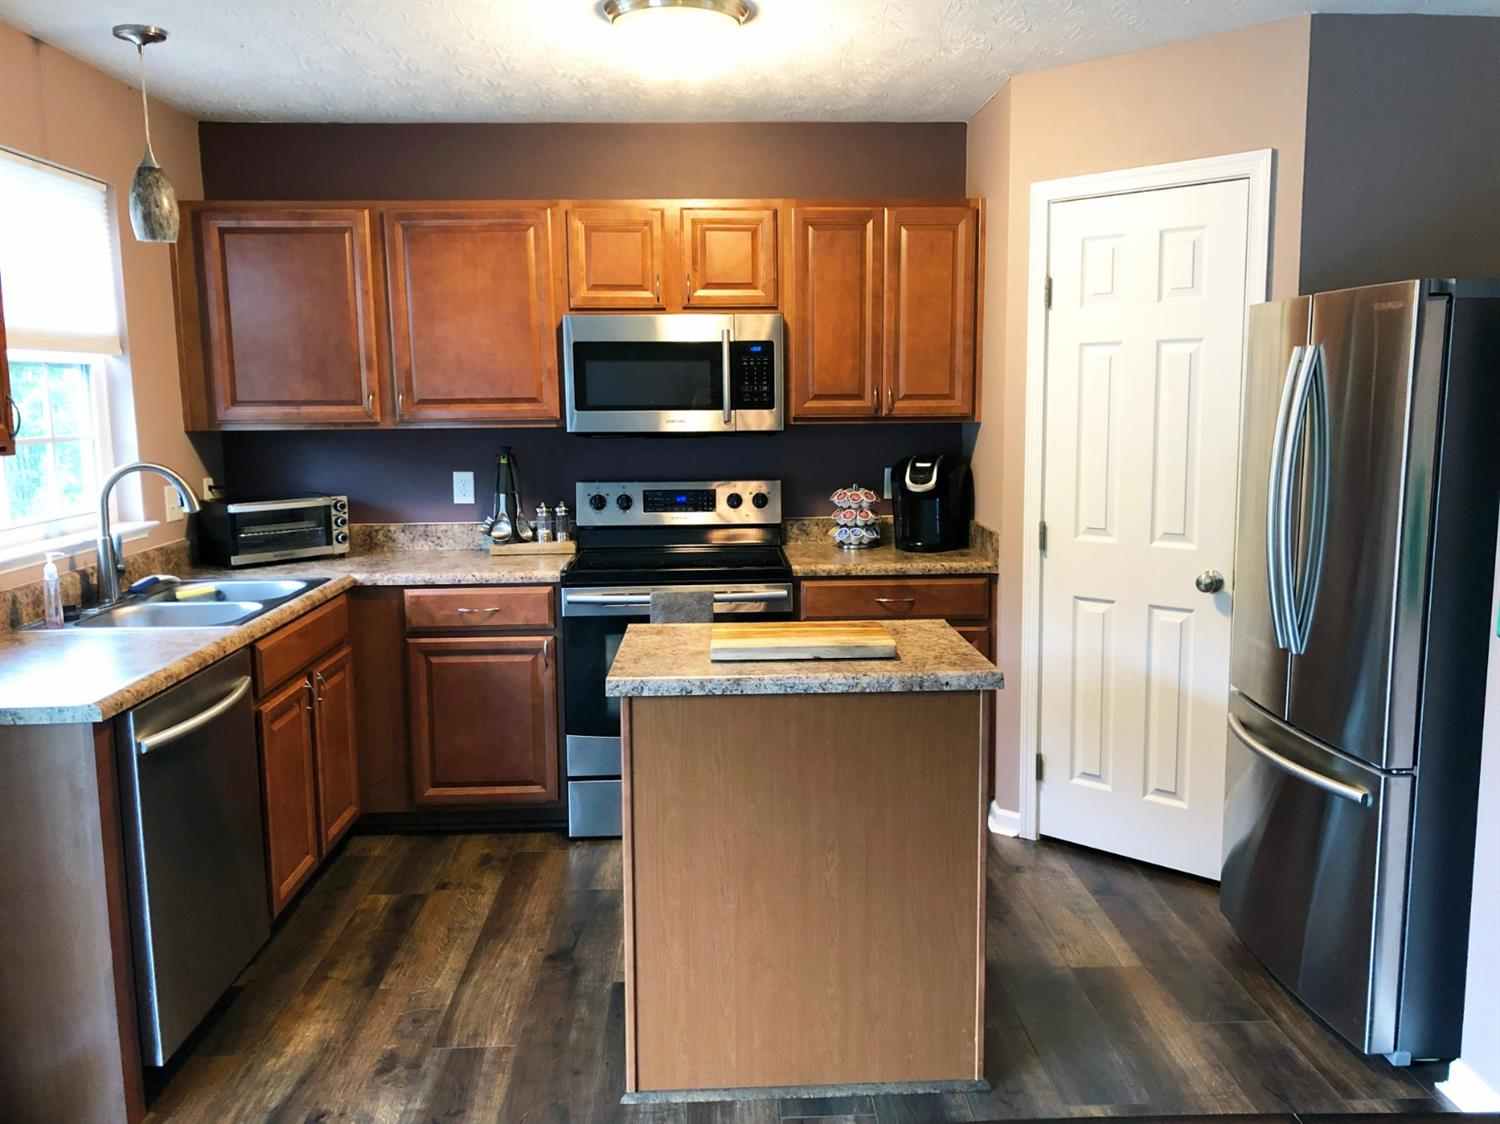 Photo 3 for 308 River Valley Blvd New Richmond, OH 45157